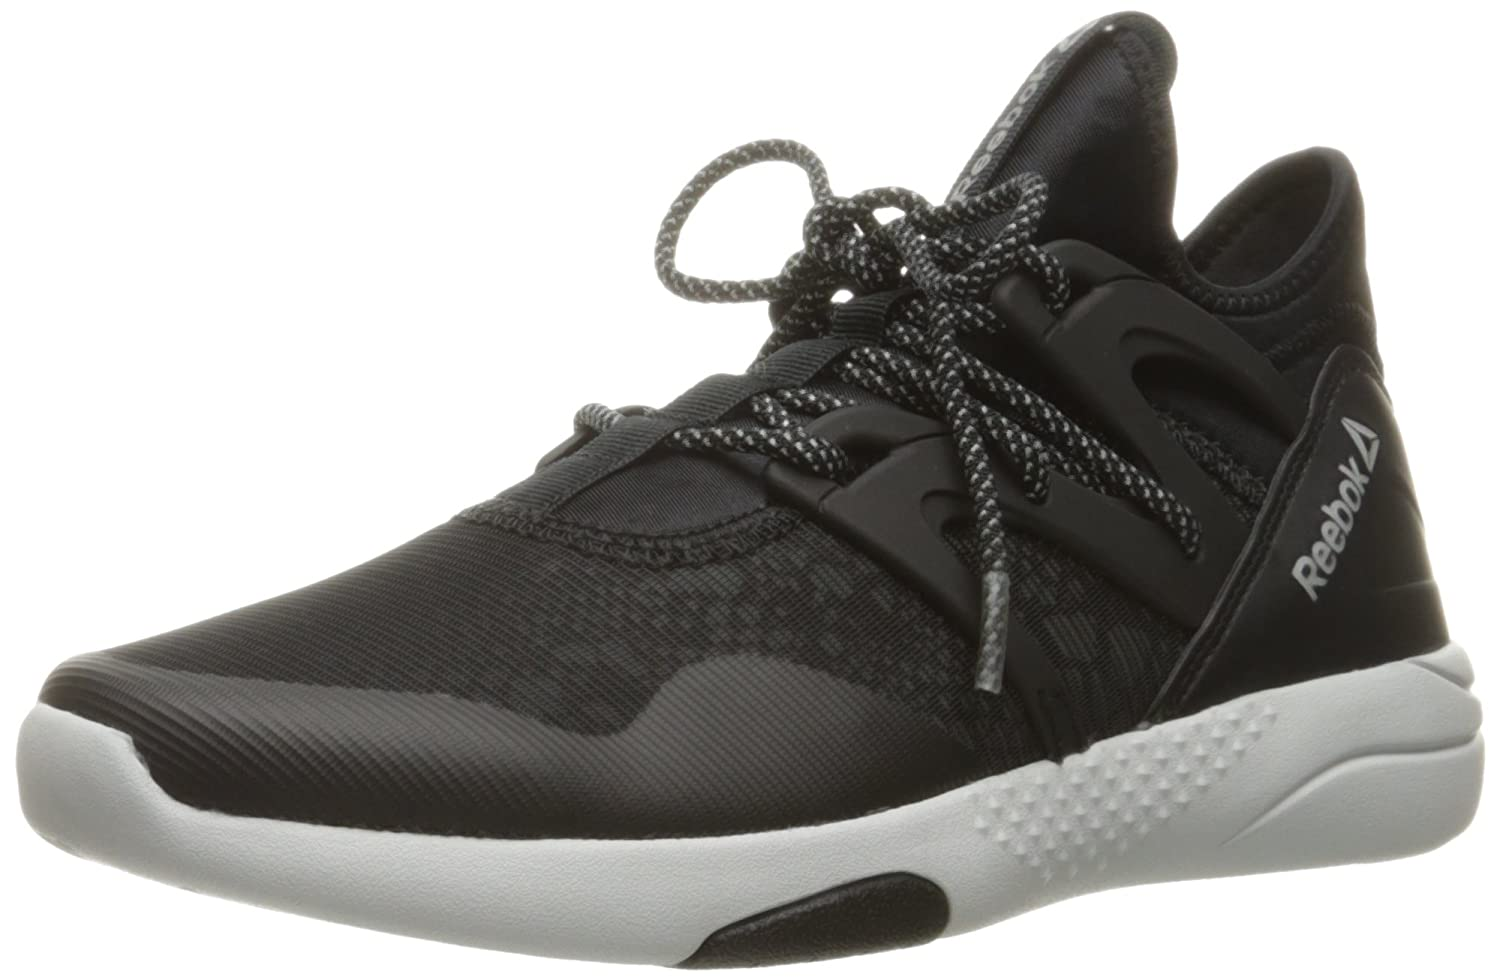 Reebok Women's Hayasu Training Shoe B019P5RD3W 11 B(M) US|Black/Skull Grey/Silver Reflective